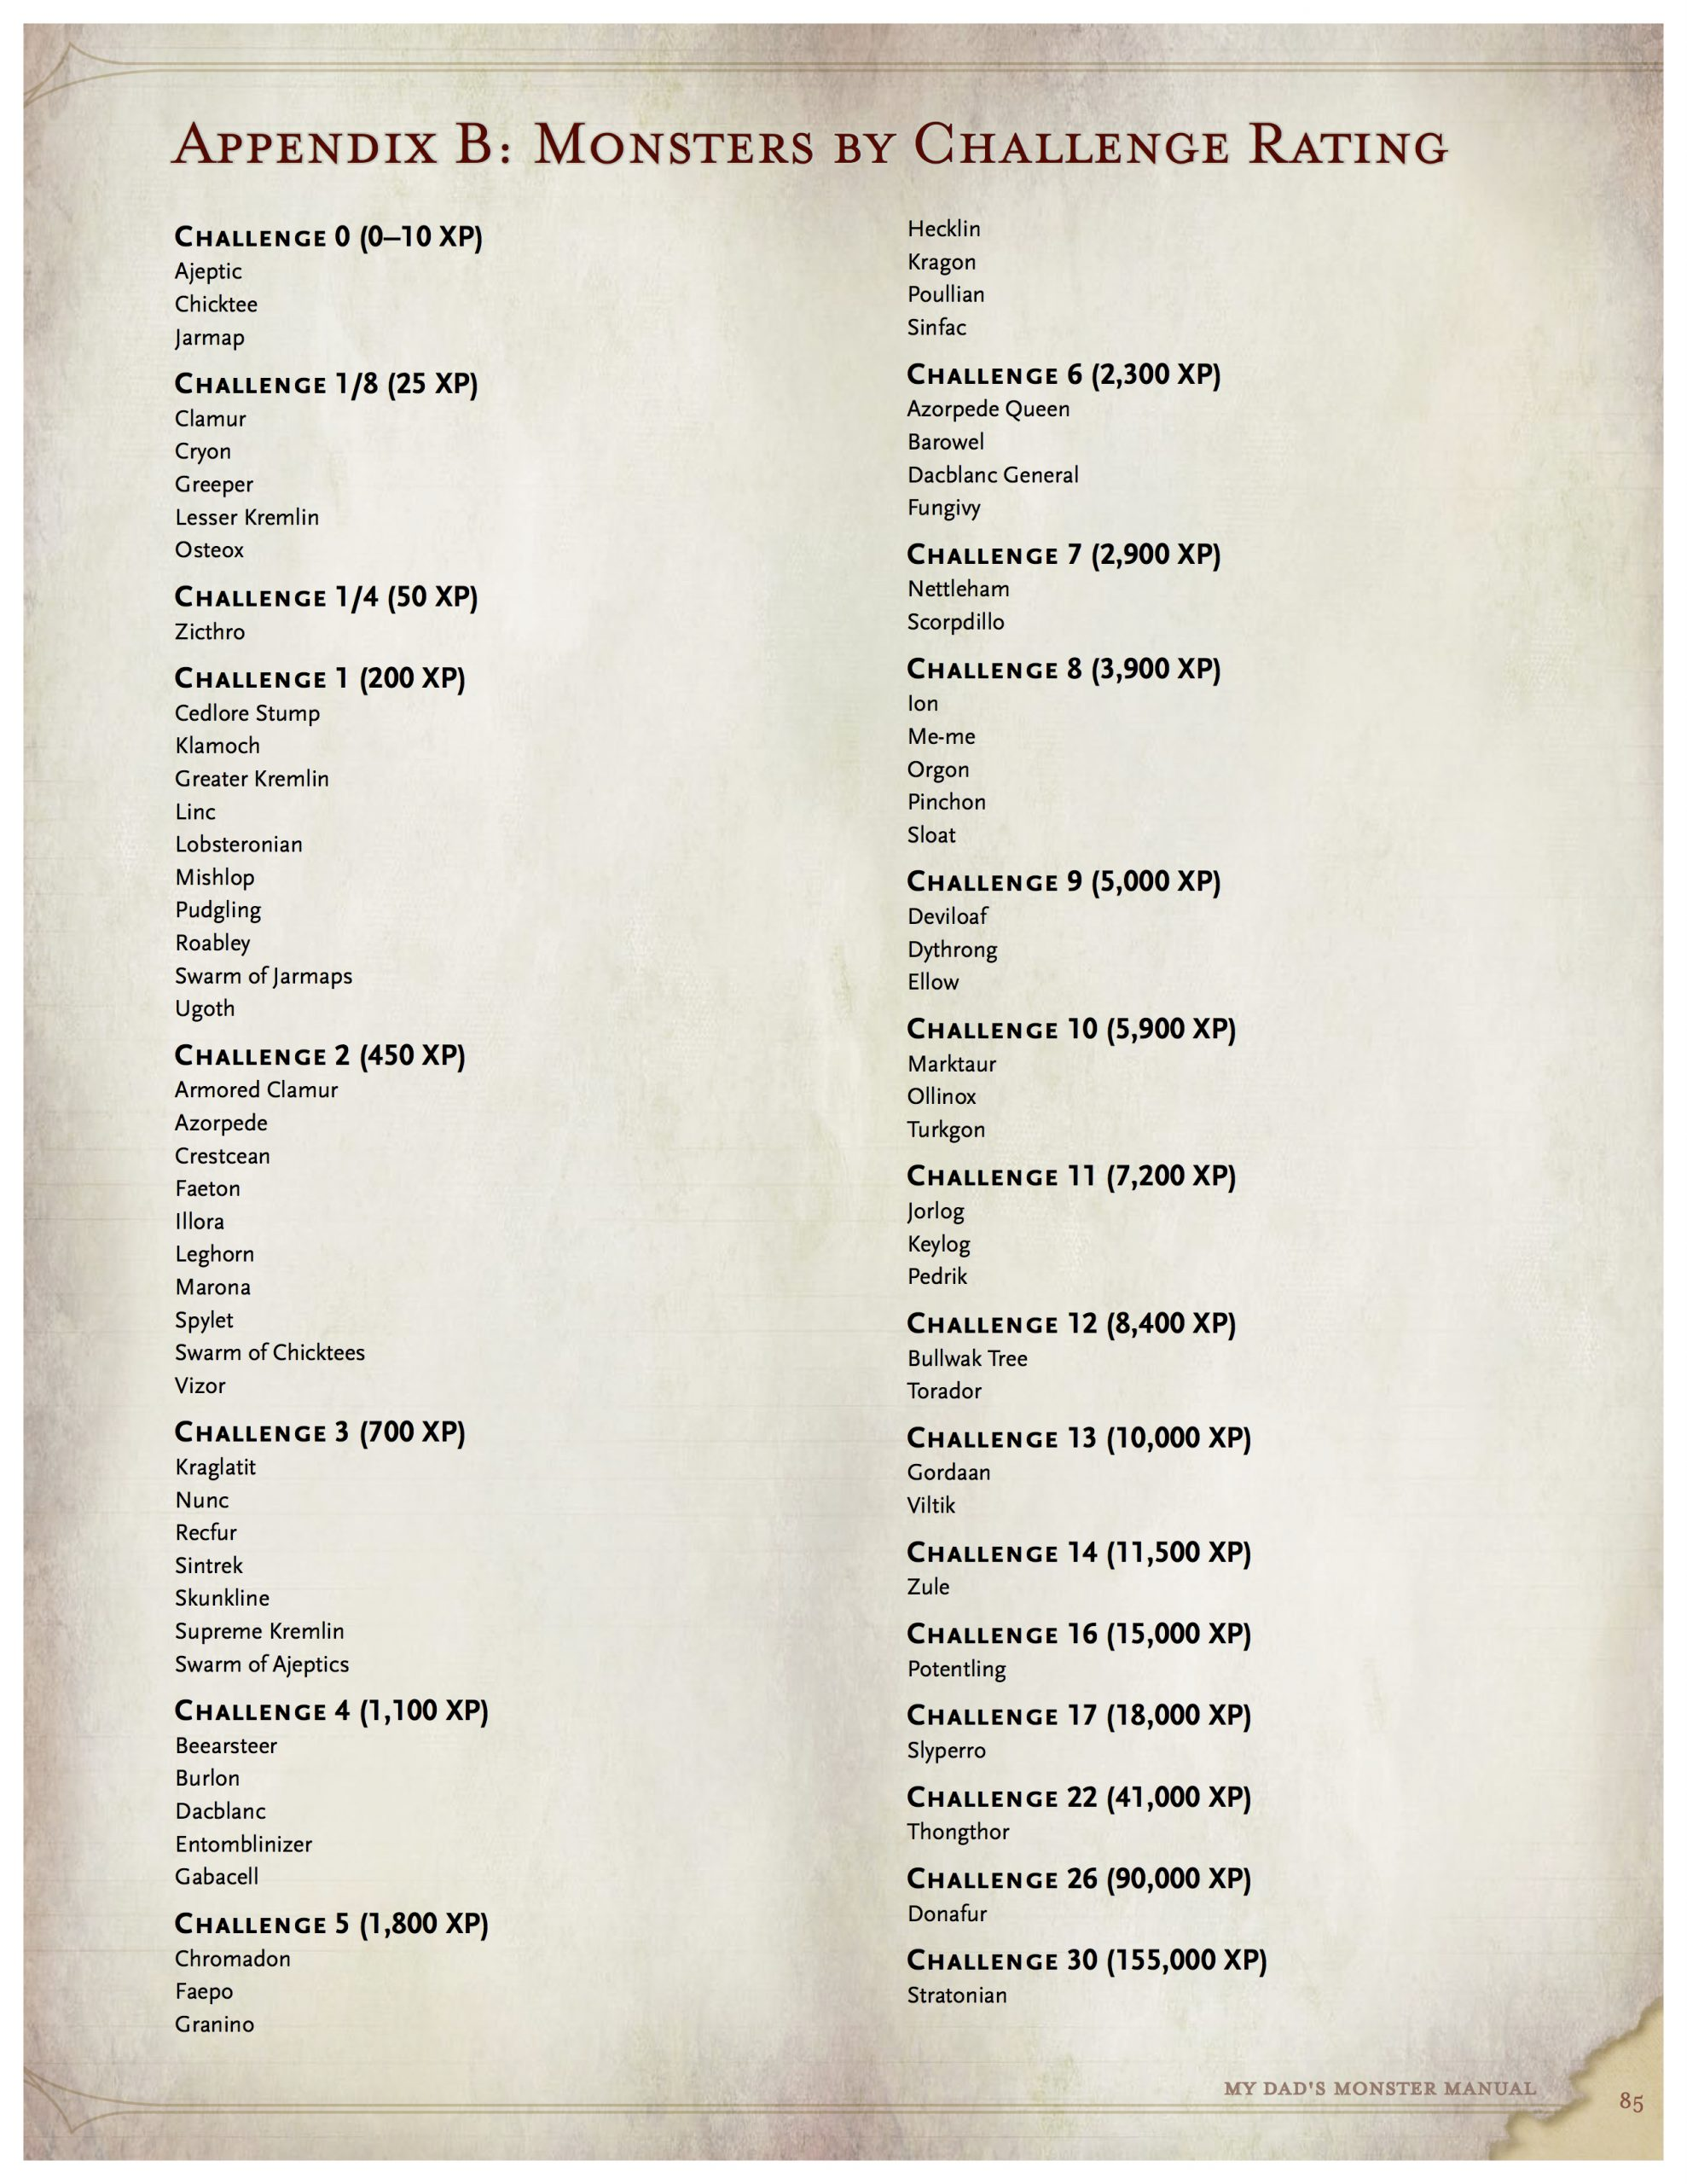 A list of the monsters in the book by CR